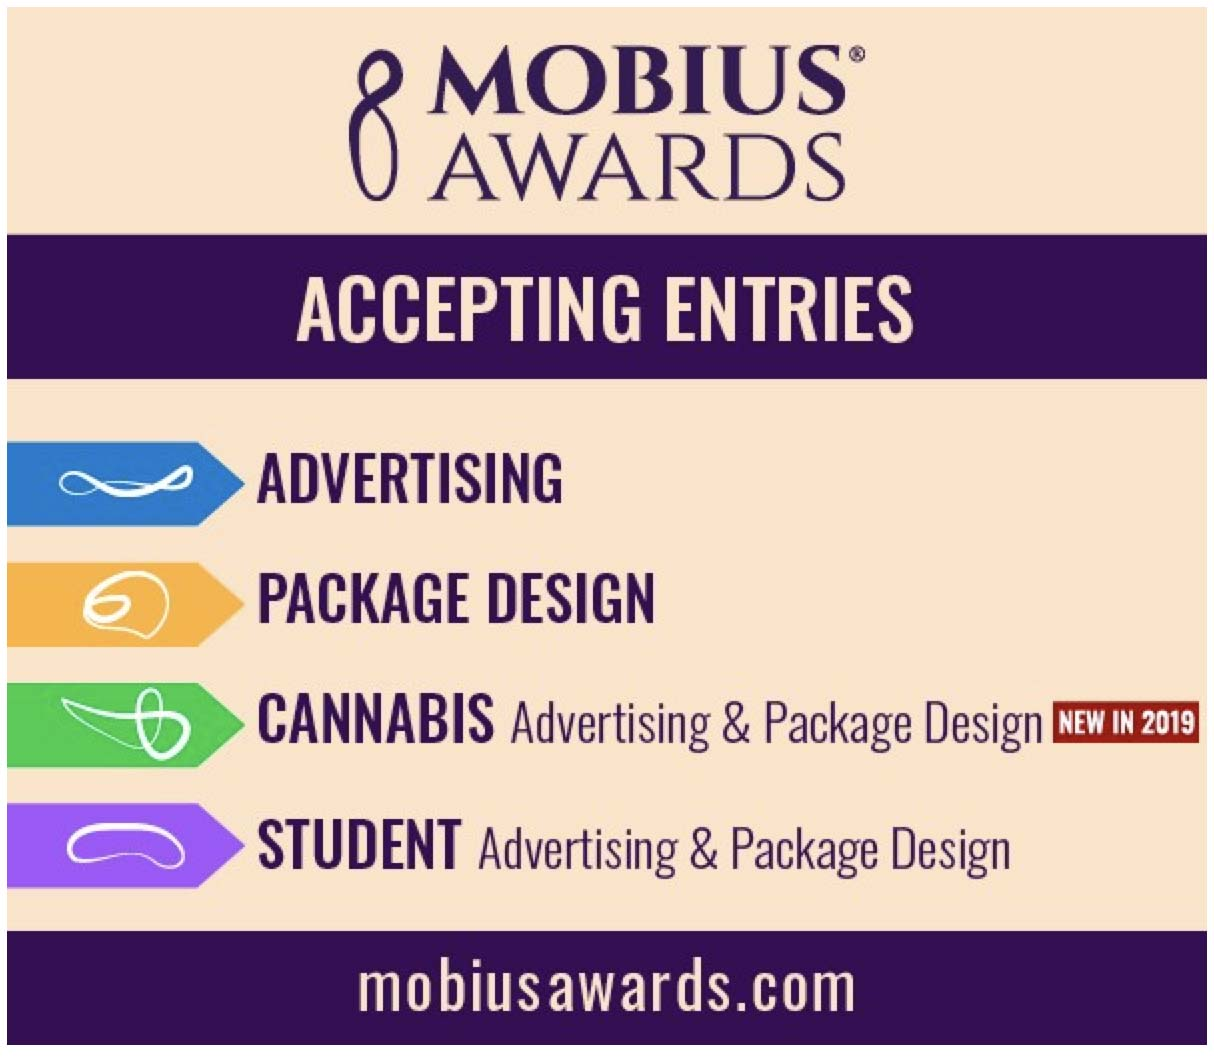 Mobius Awards advertising competition now open; deadline for entries TODAY, Tues, October 1